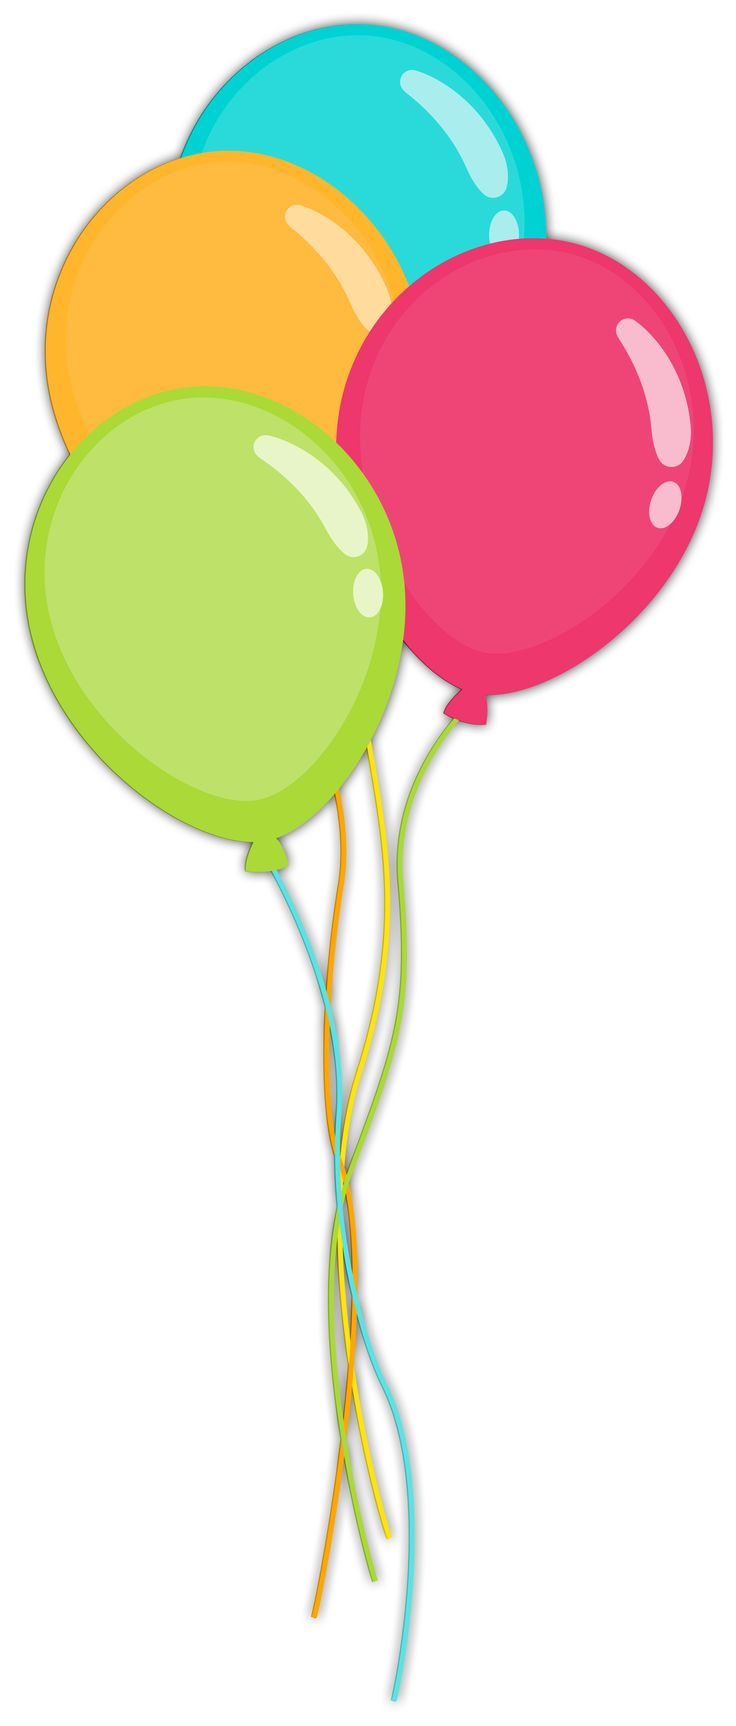 736x1726 Clipart For Balloons